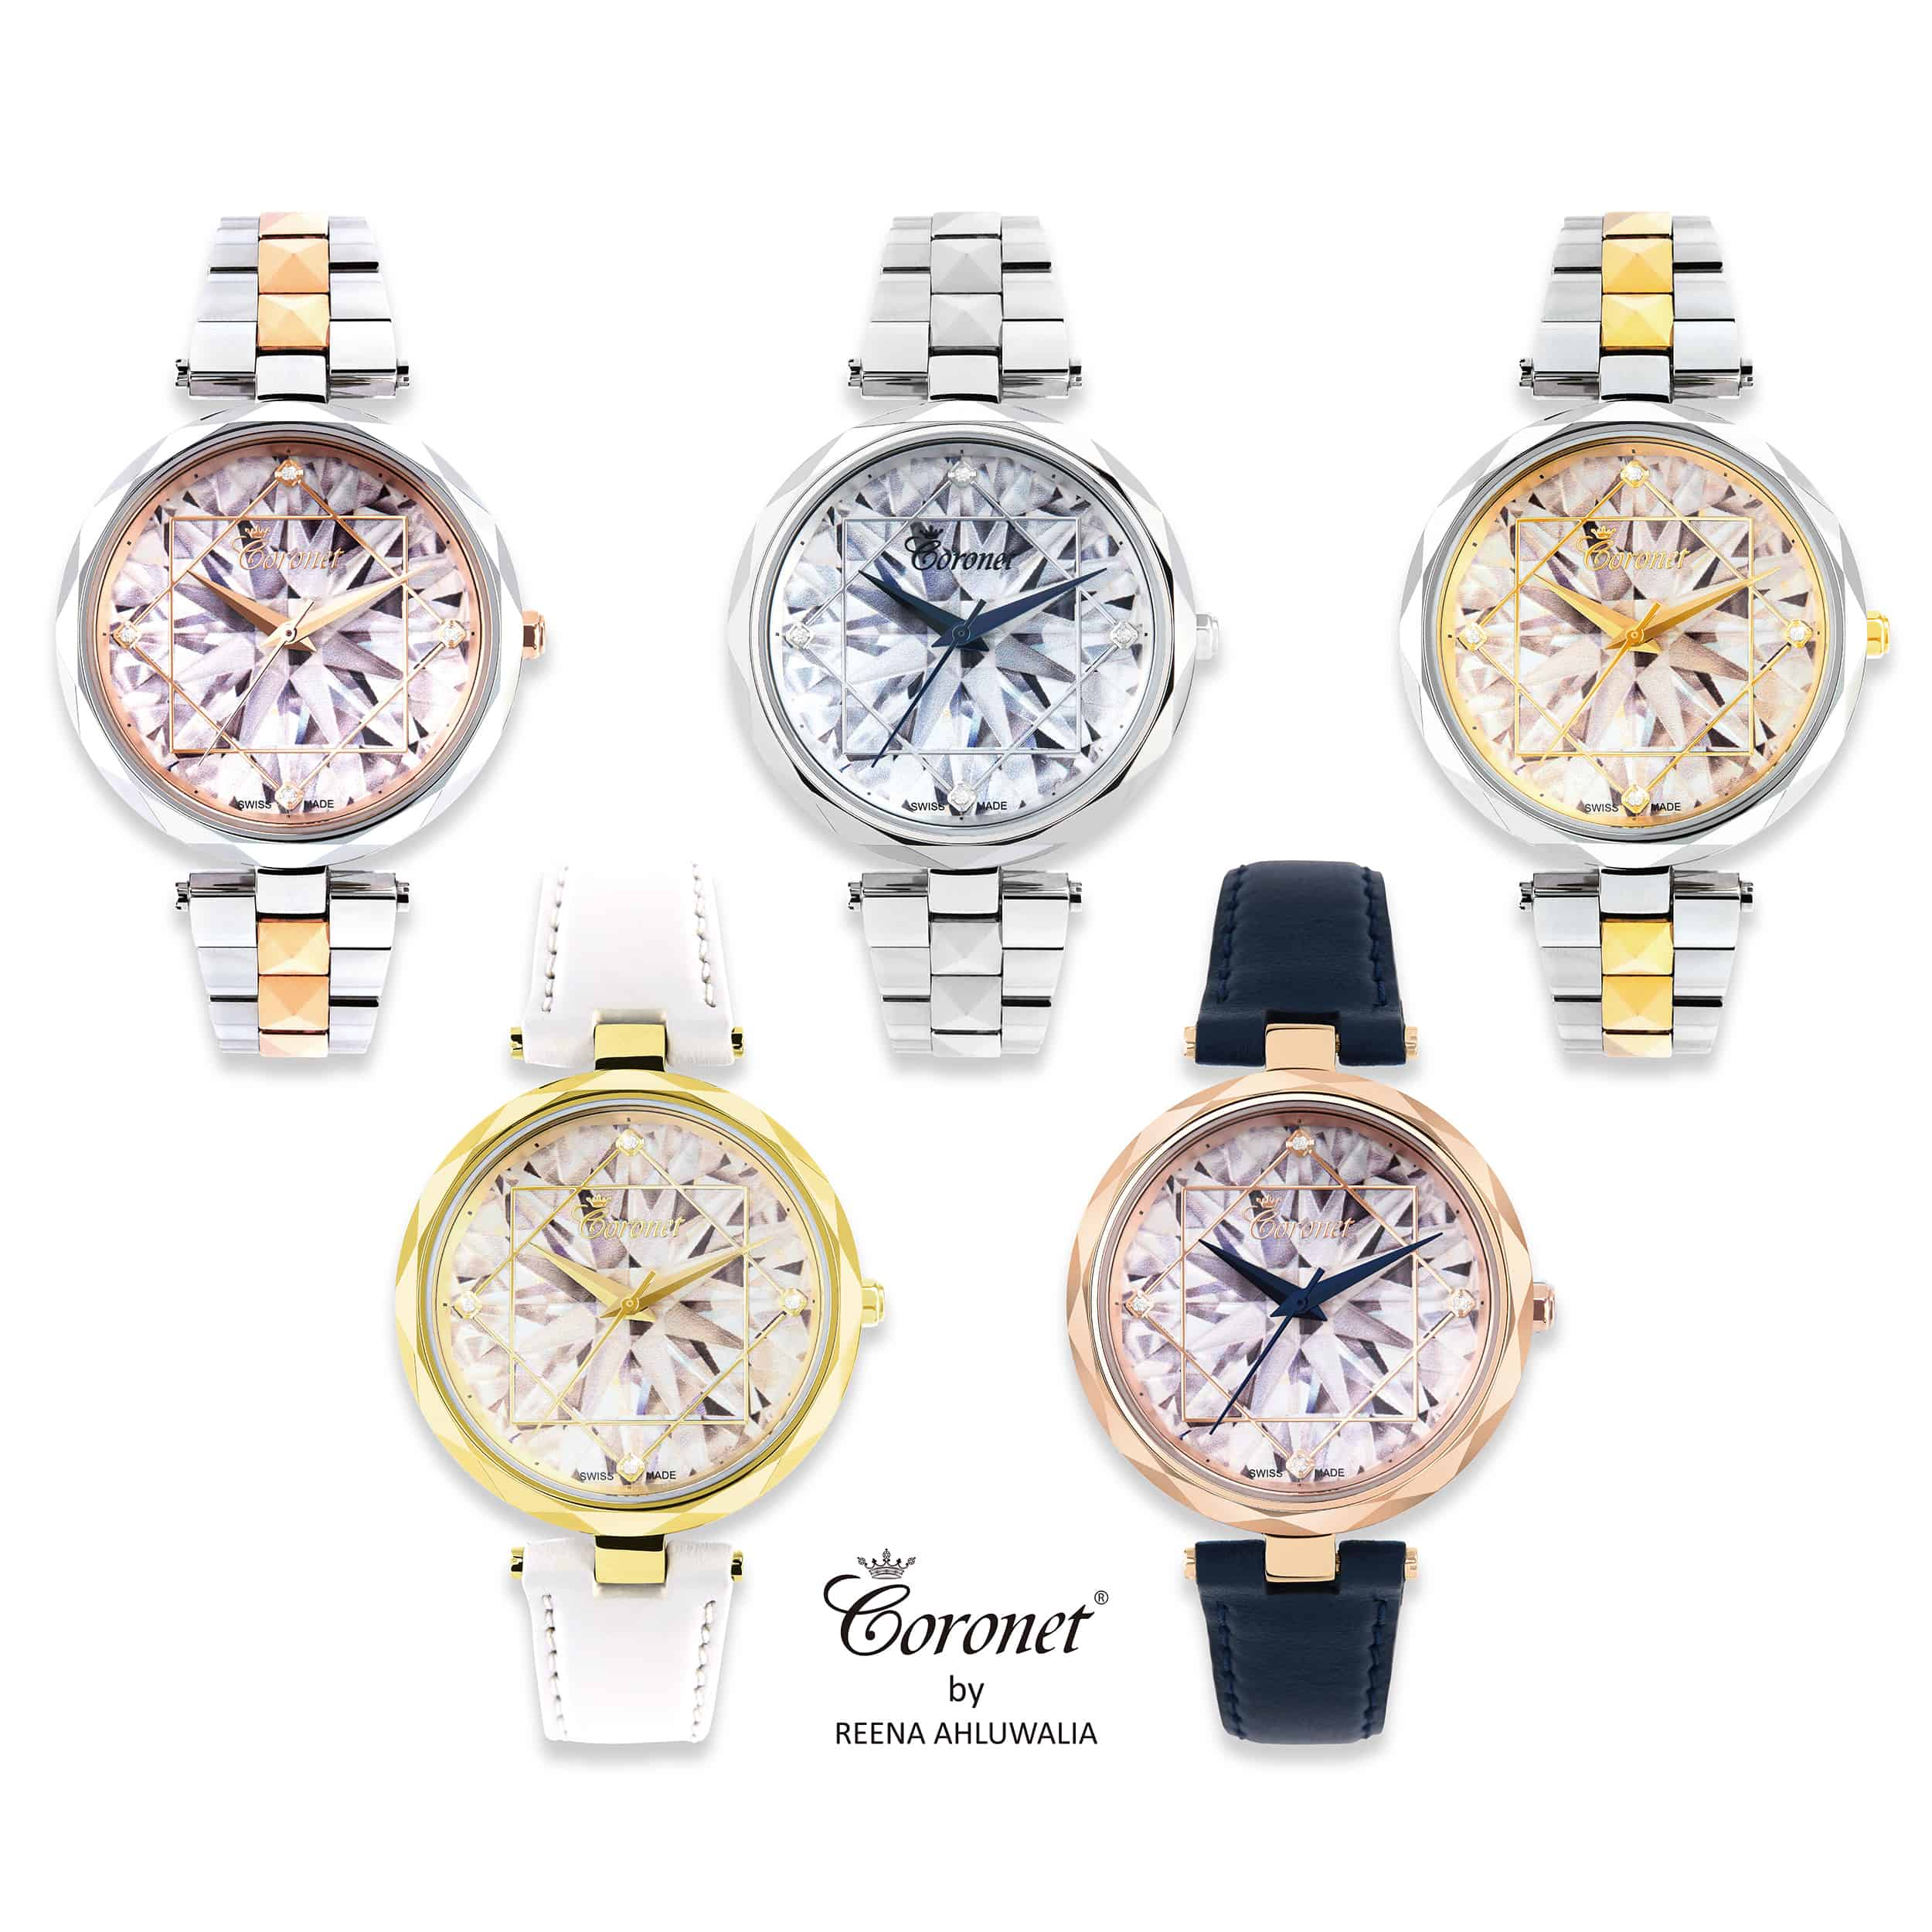 Coronet By Reena diamond watches